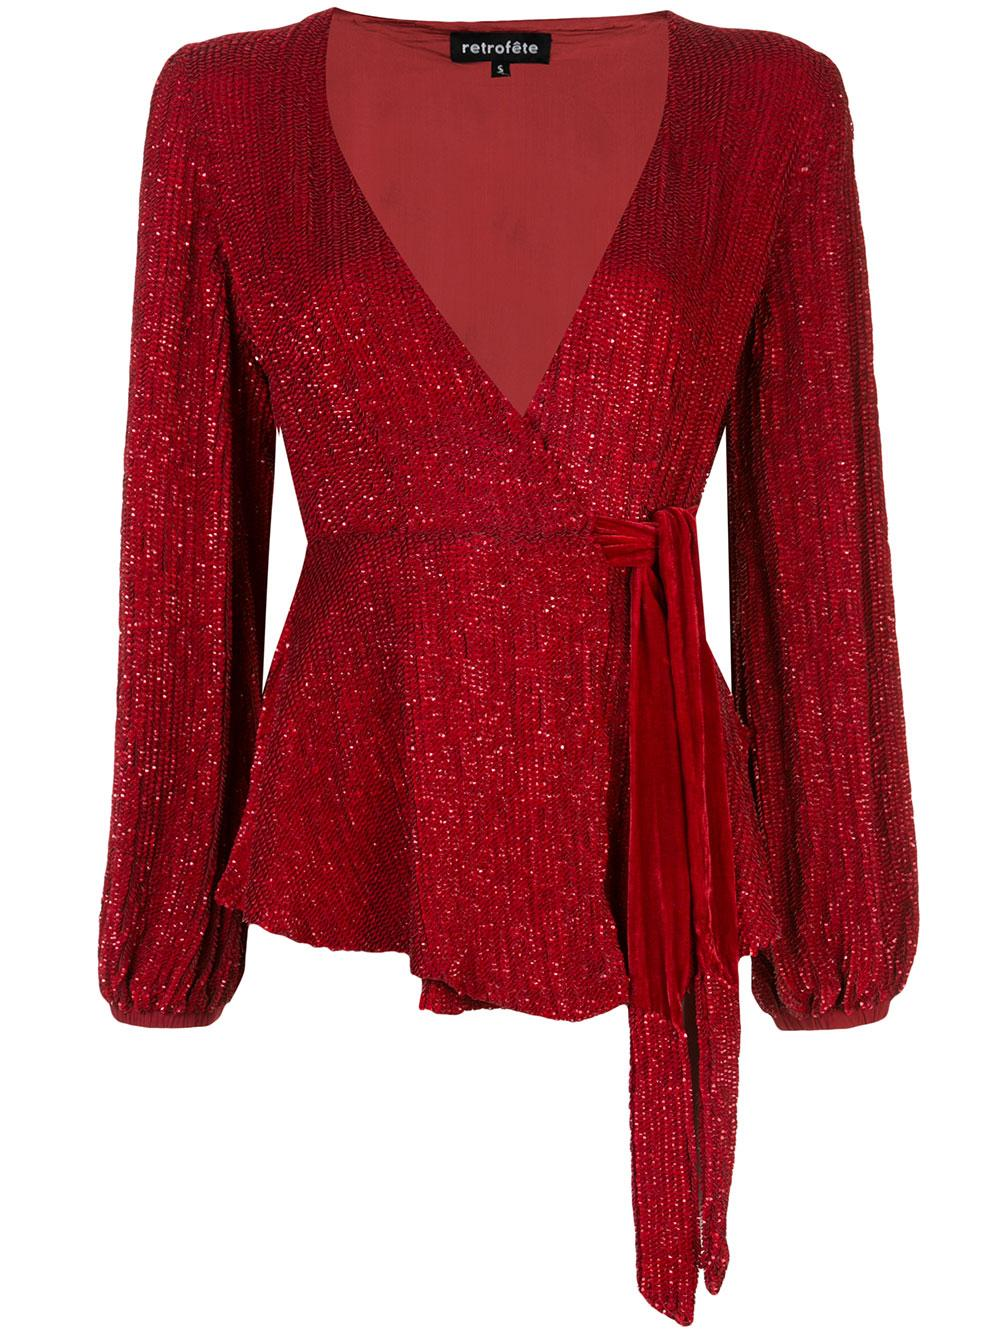 Bette Long Sleeve Sequin Top Item # HL20-2432